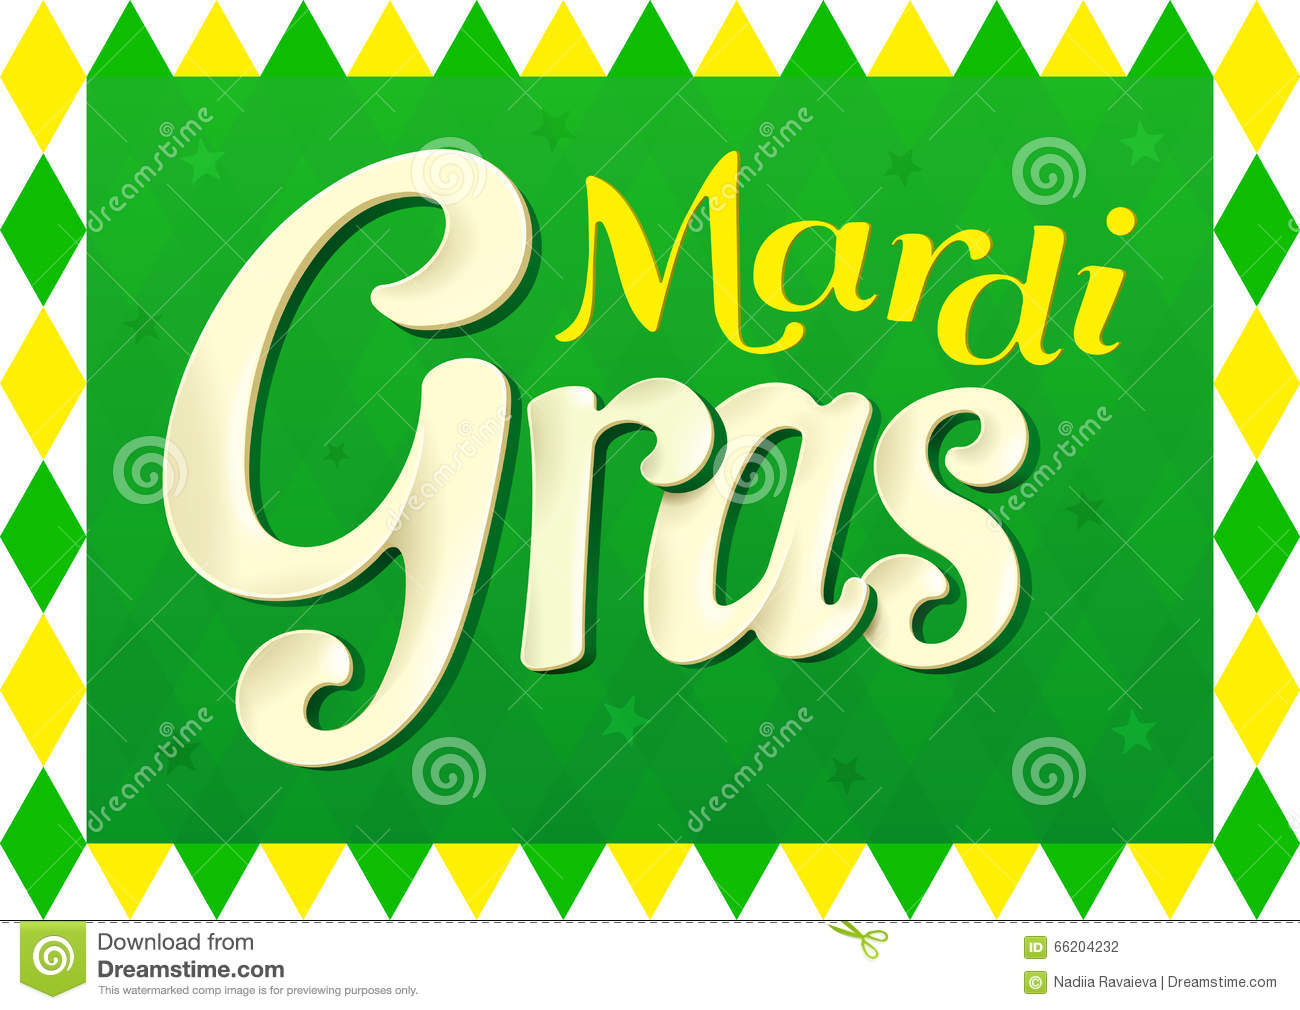 Mardi Gras Design For Fat Thursday With Green Colors Stock Vector.